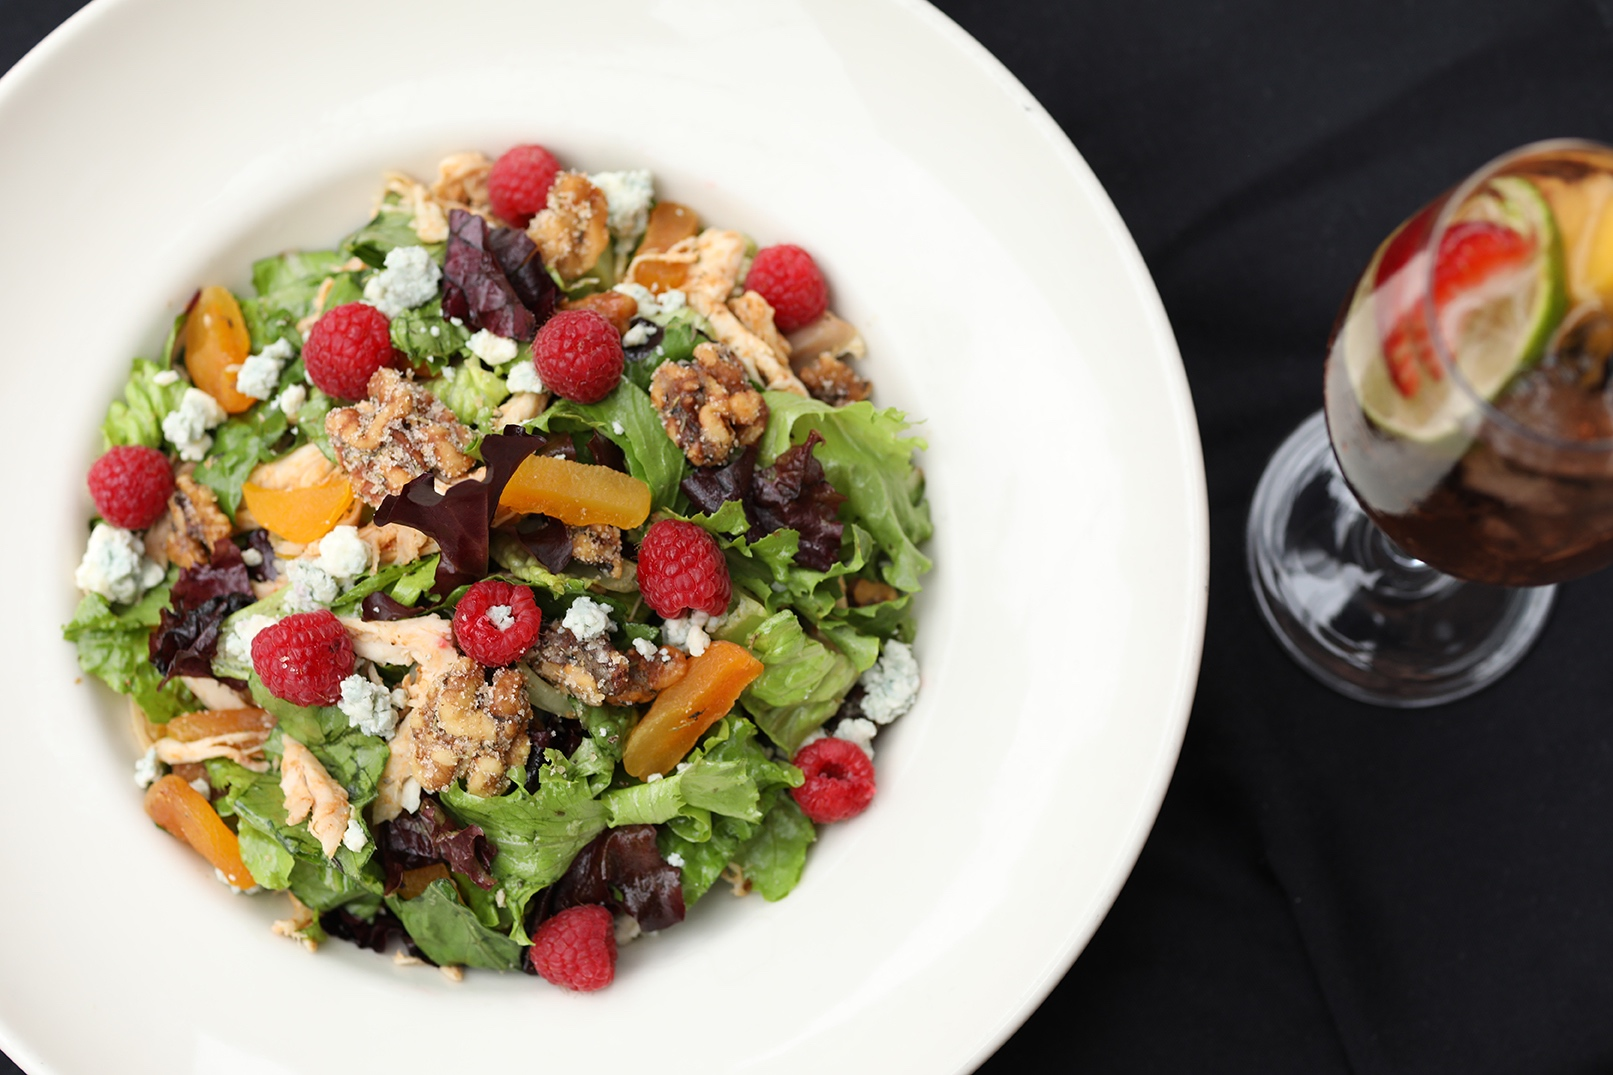 Chester's Walnut and Berry Salad